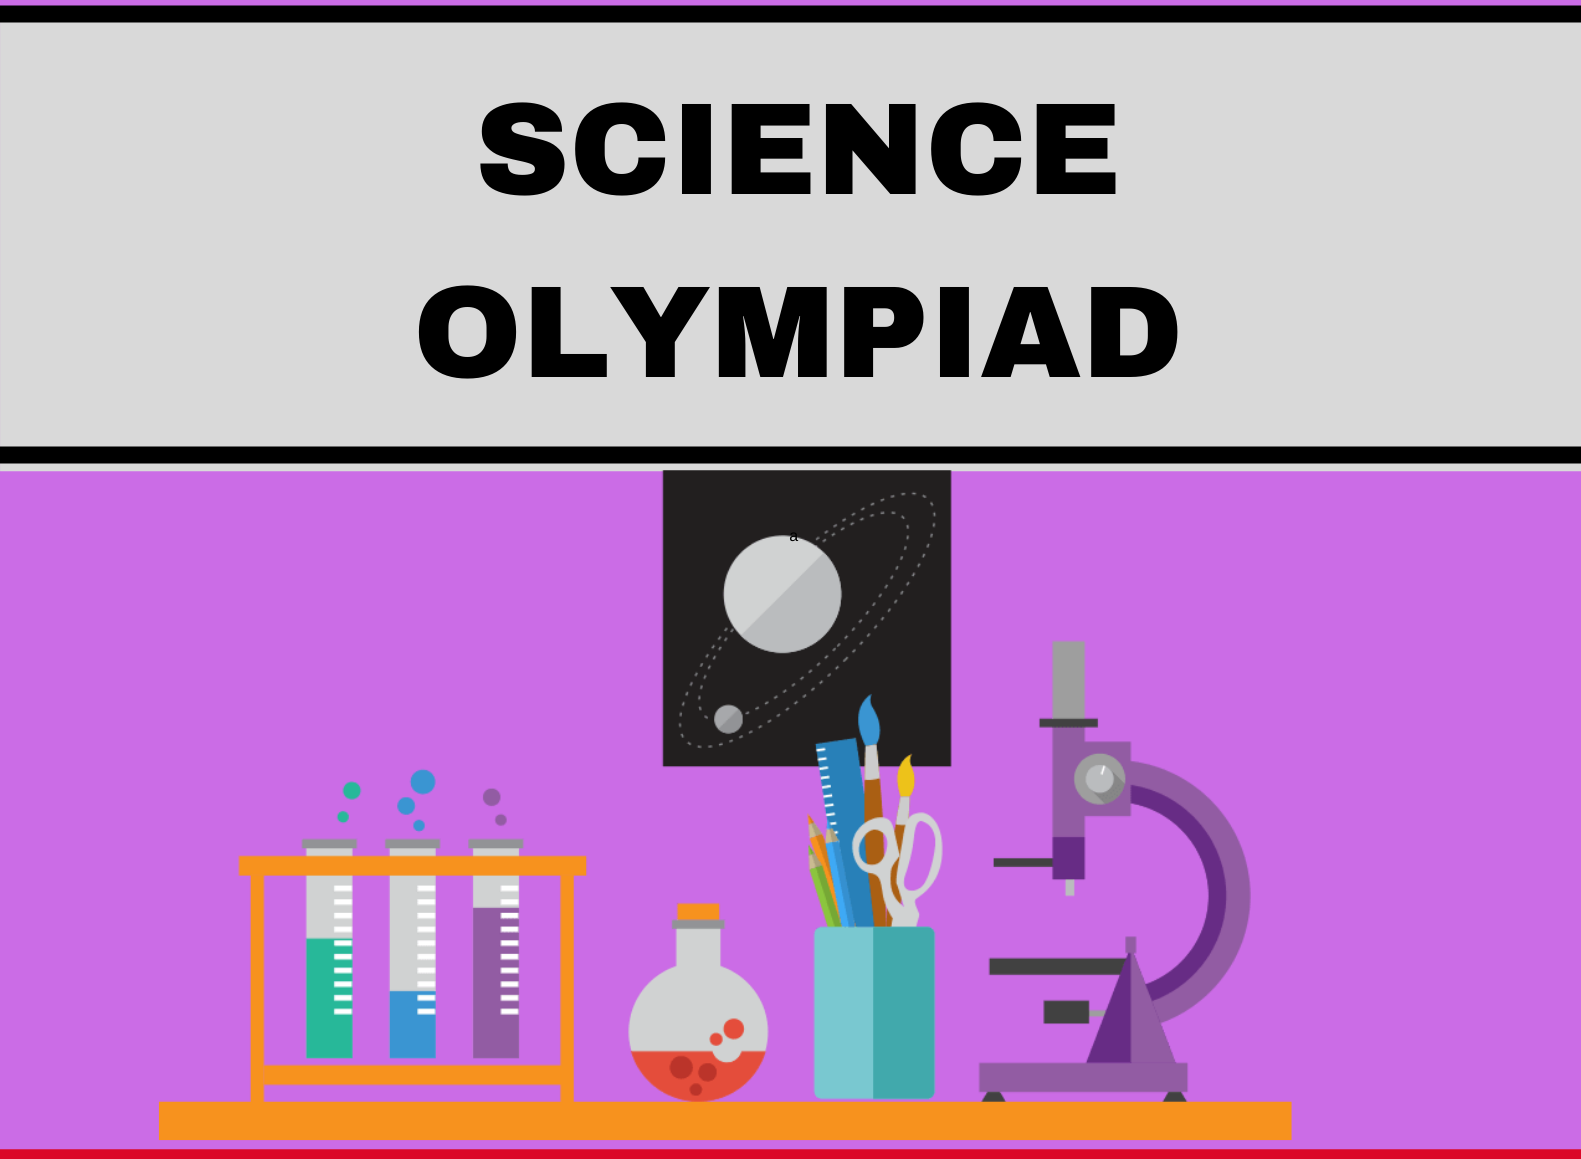 SCIENCE-OLYMPIAD-POSTER